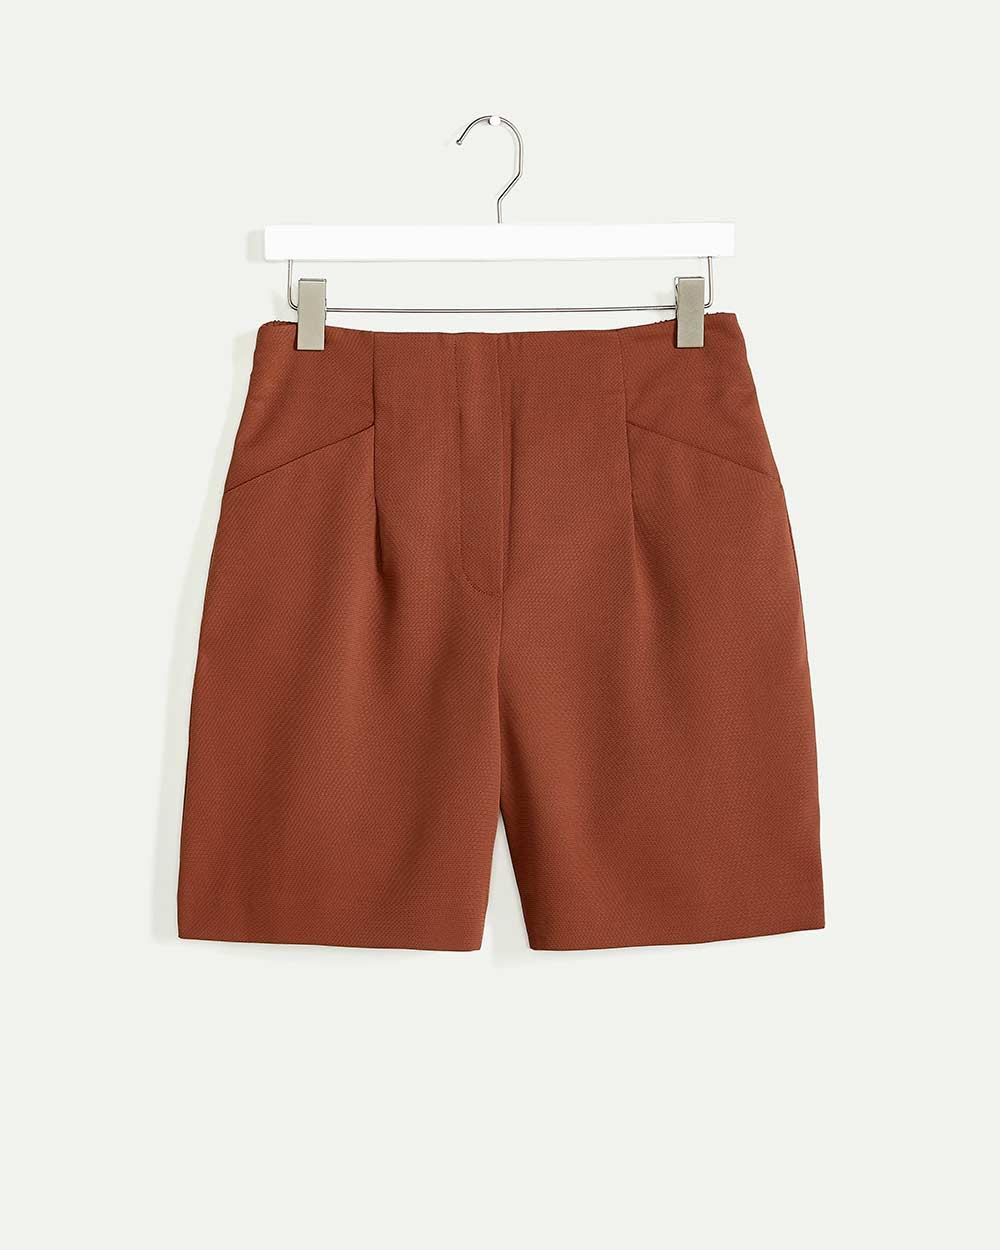 Pull On Shorts With Fake Fly